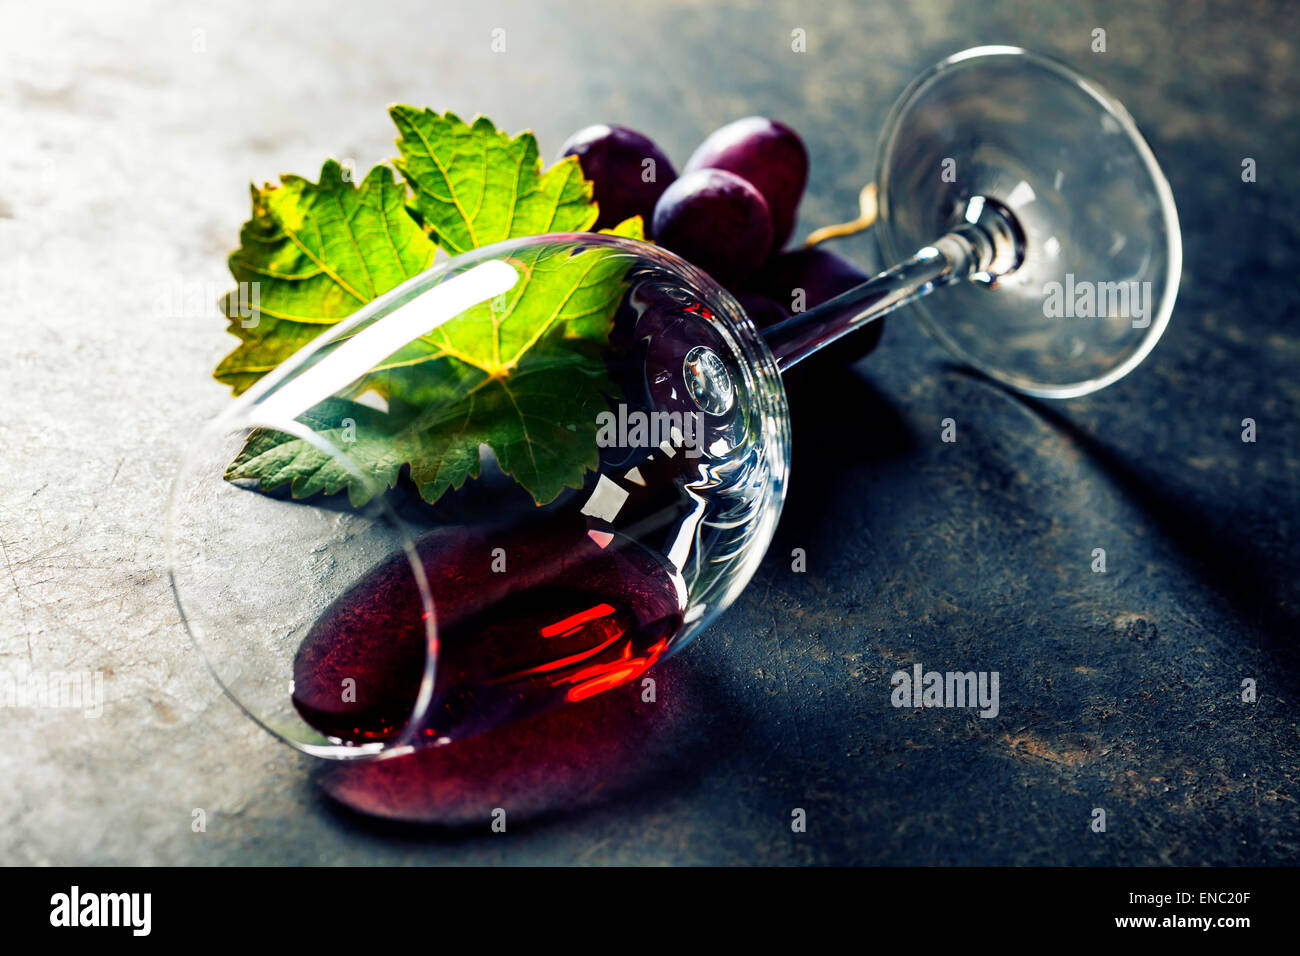 Glass of red wine on dark background - Stock Image